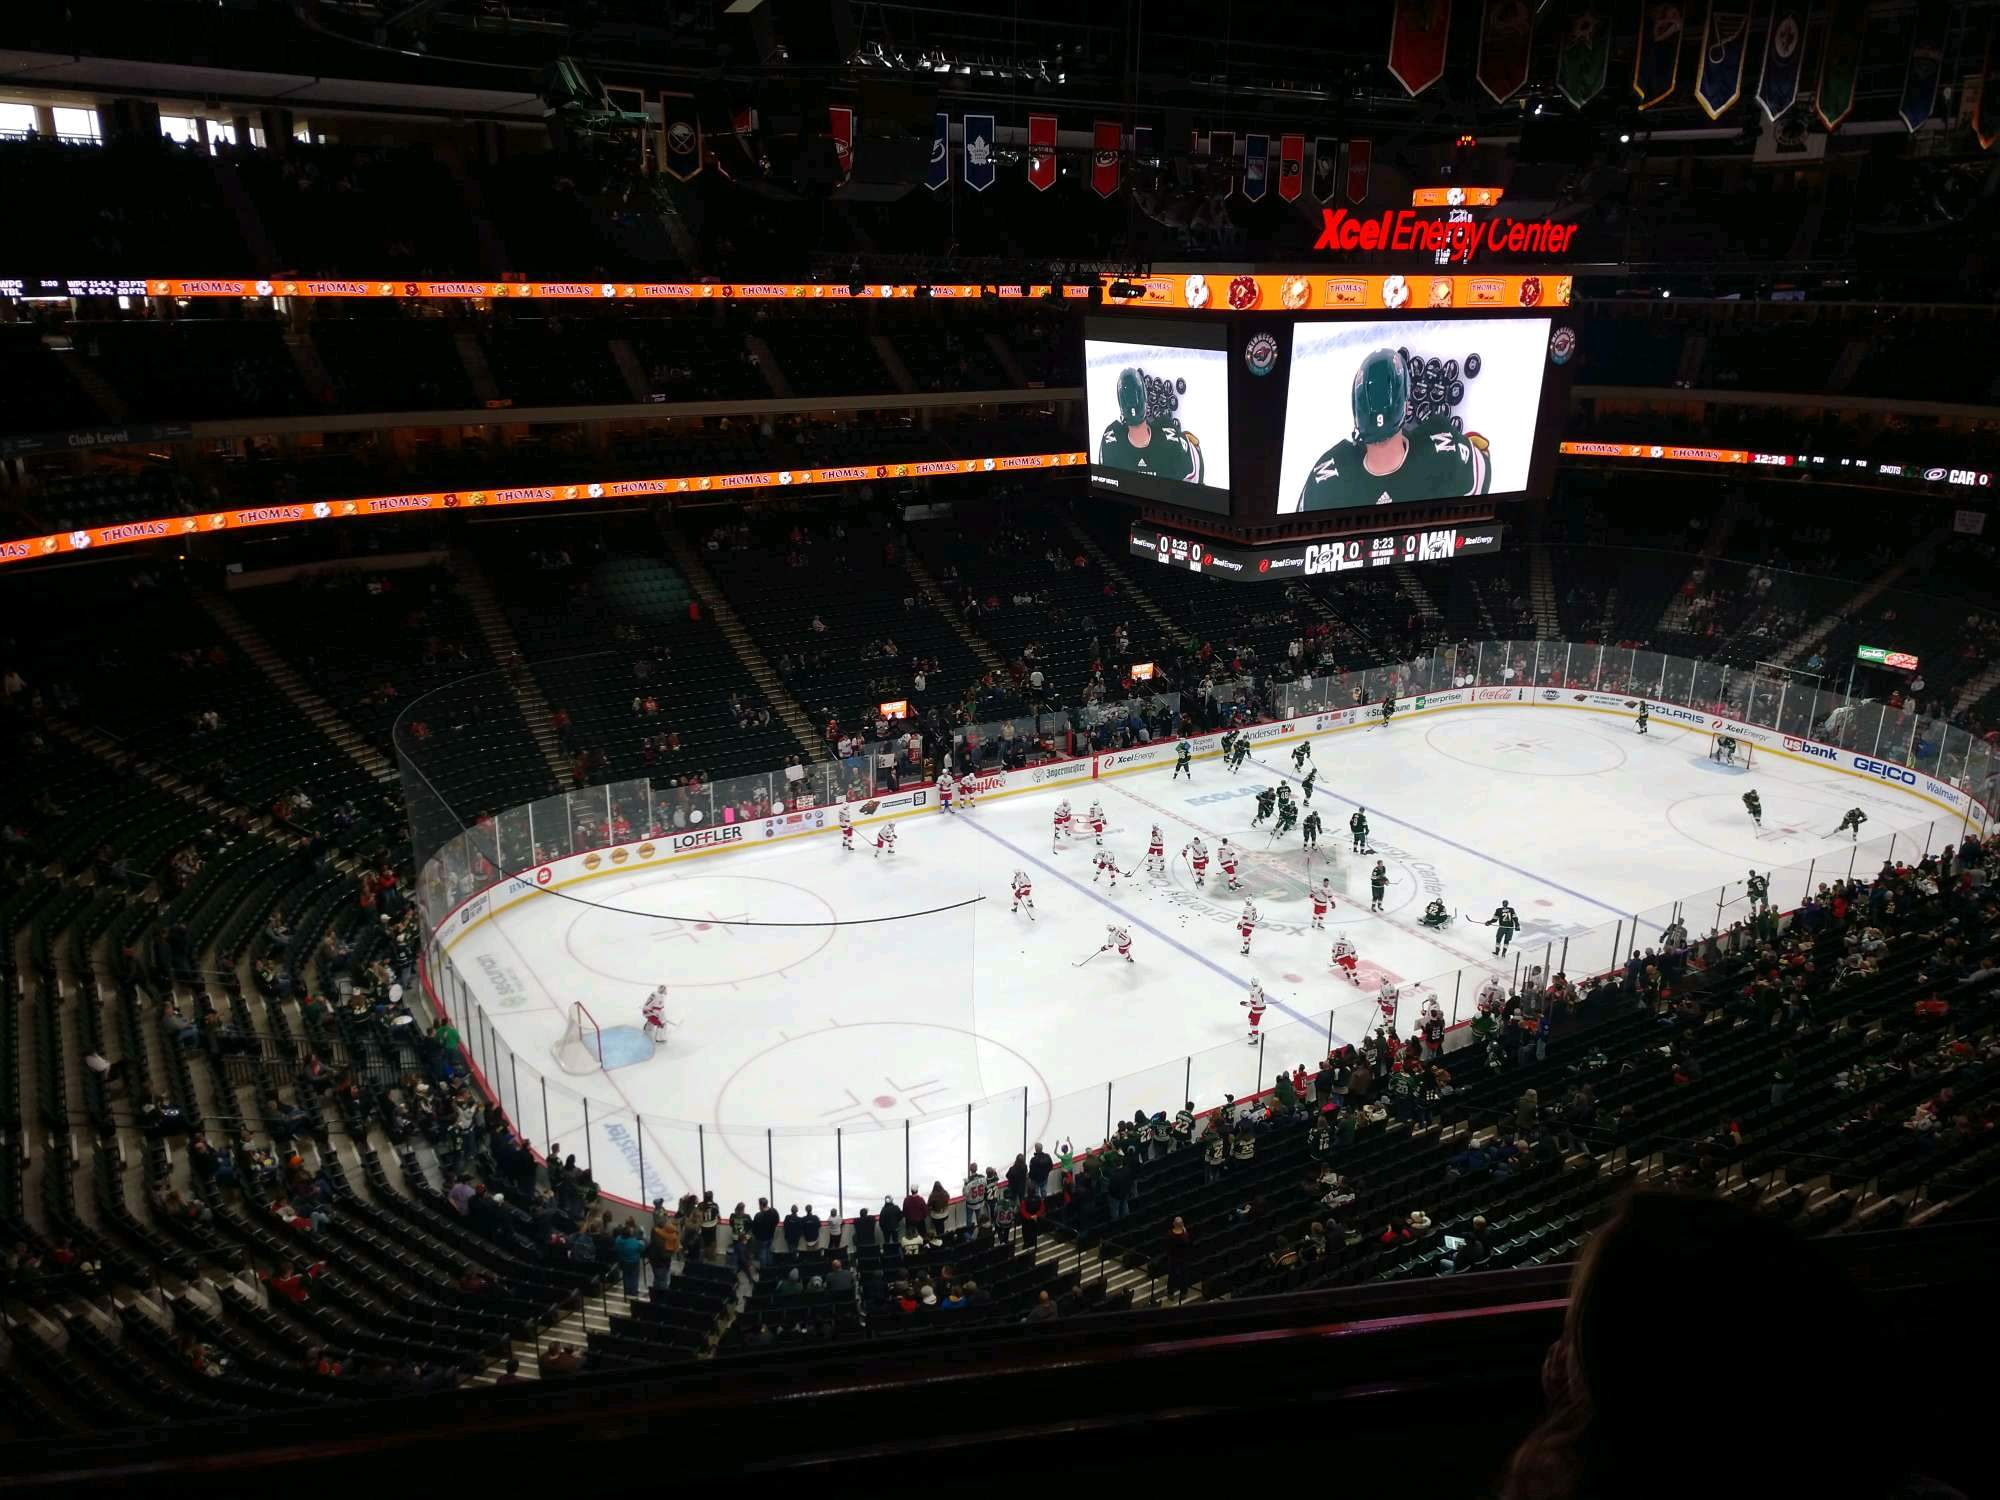 Xcel Energy Center Section 207 Row 2 Seat 23